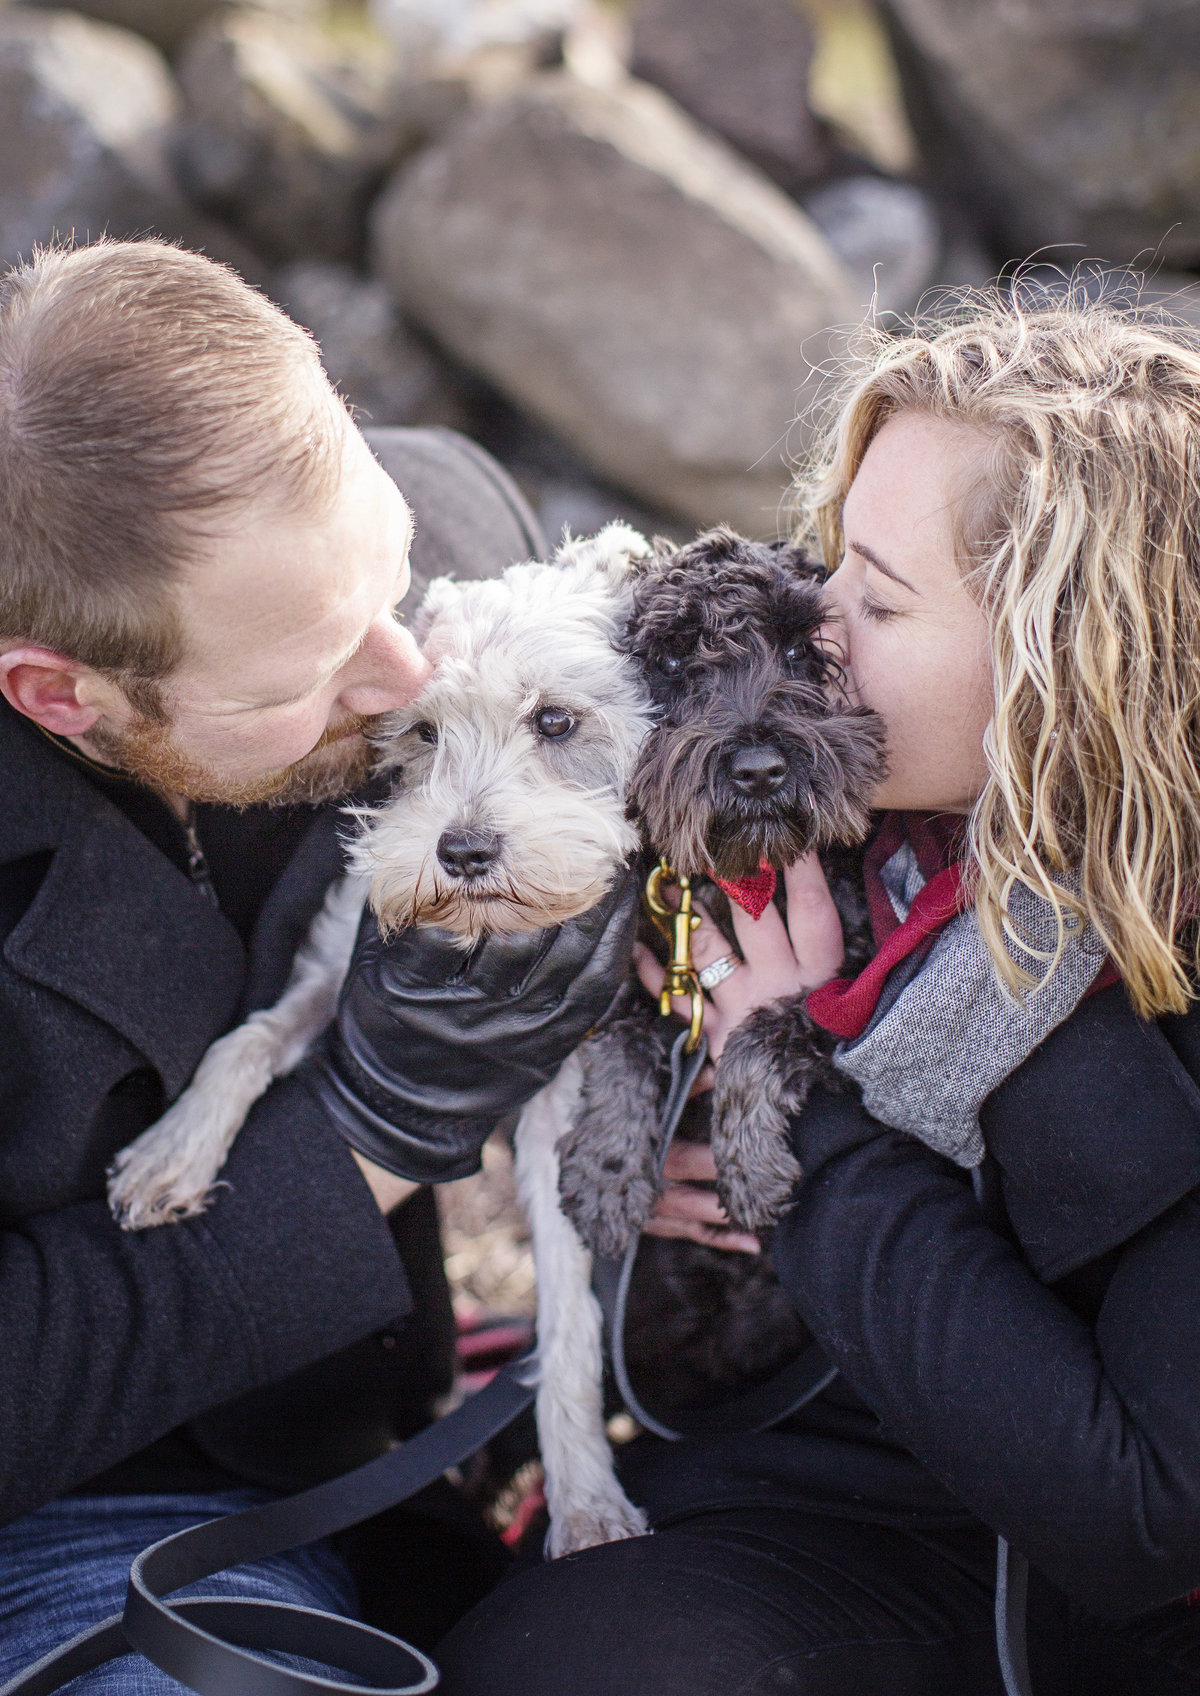 family photos with dogs couples photo with dogs